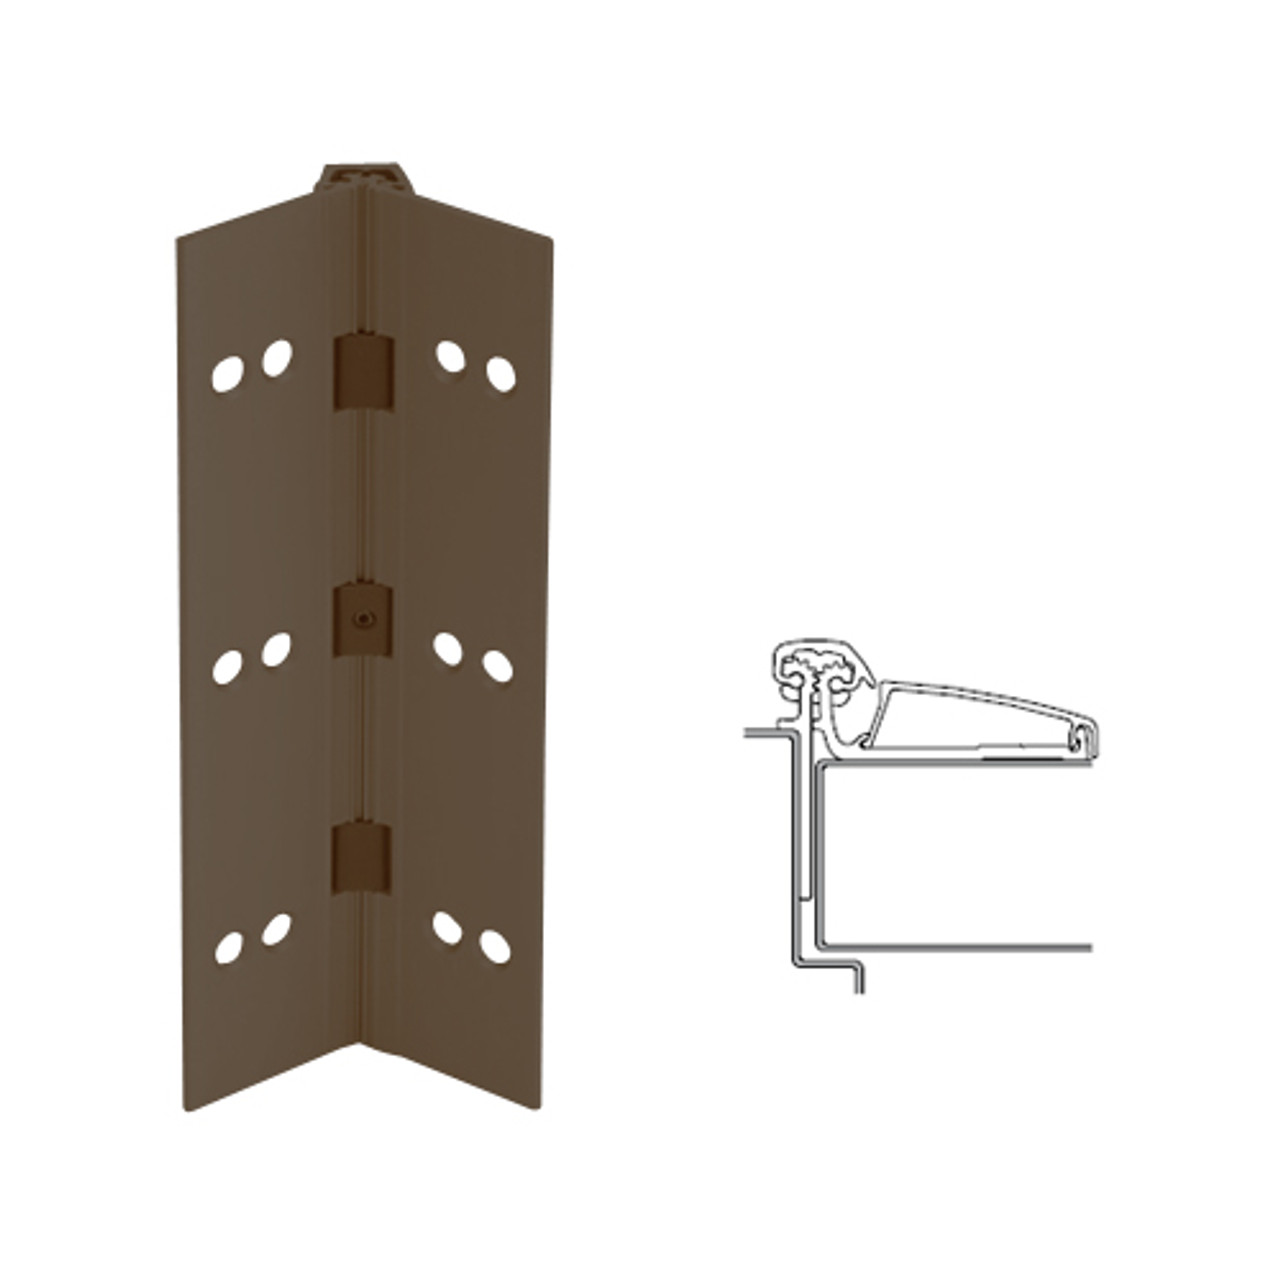 045XY-313AN-95-SECHM IVES Adjustable Half Surface Continuous Geared Hinges with Security Screws - Hex Pin Drive in Dark Bronze Anodized